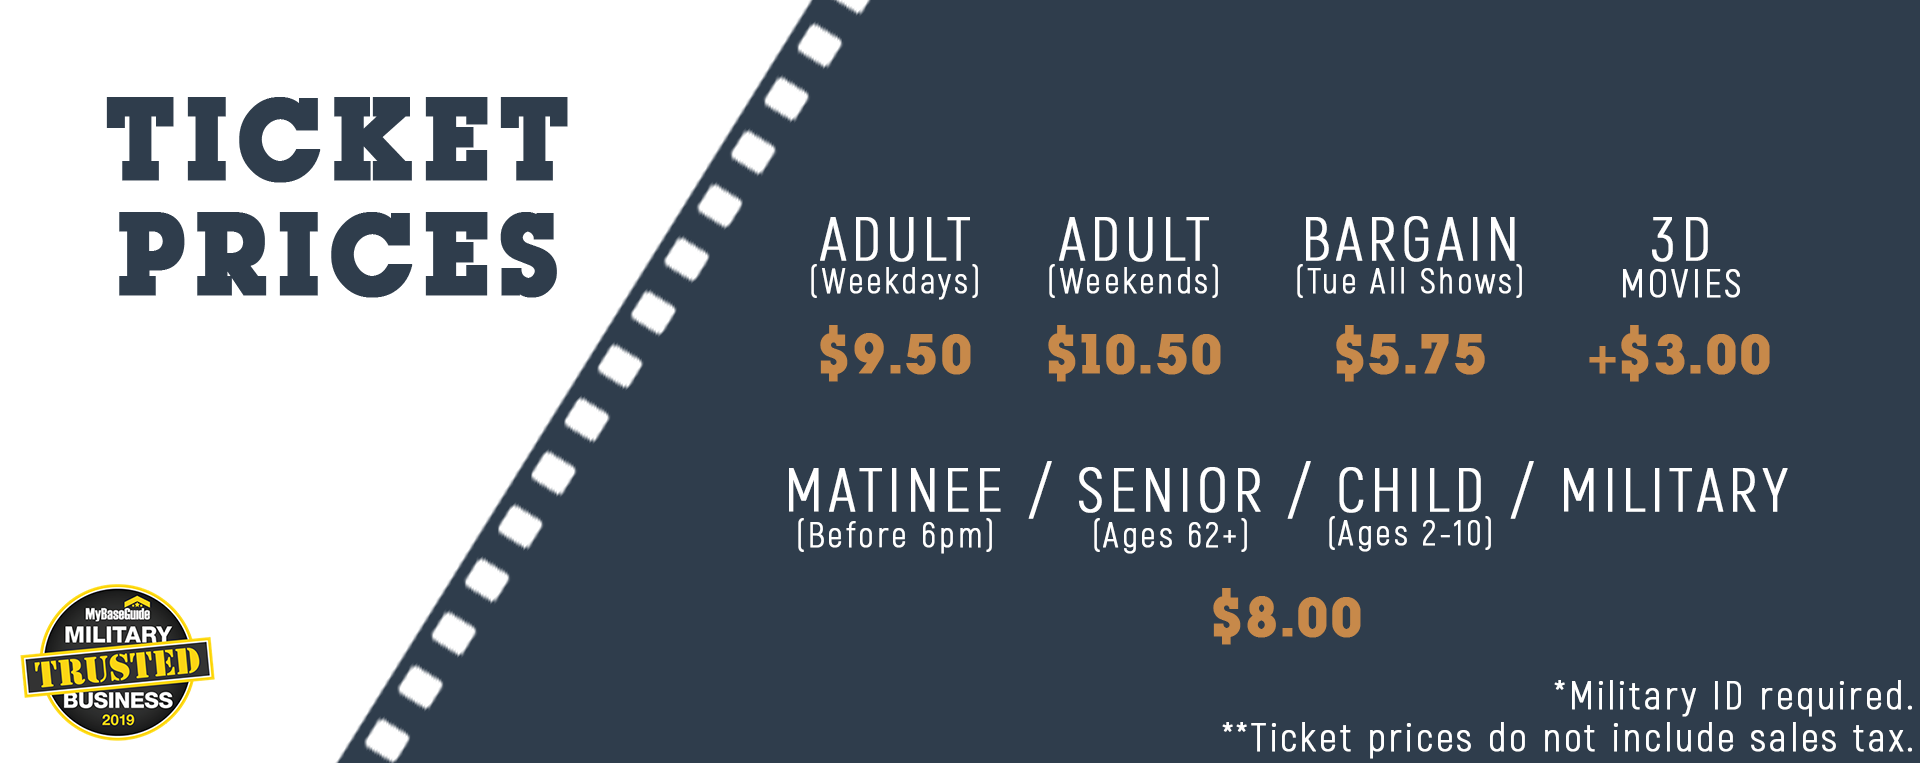 Ticket-Prices-Updated-W-Matinee- MilitaryBadge Lg